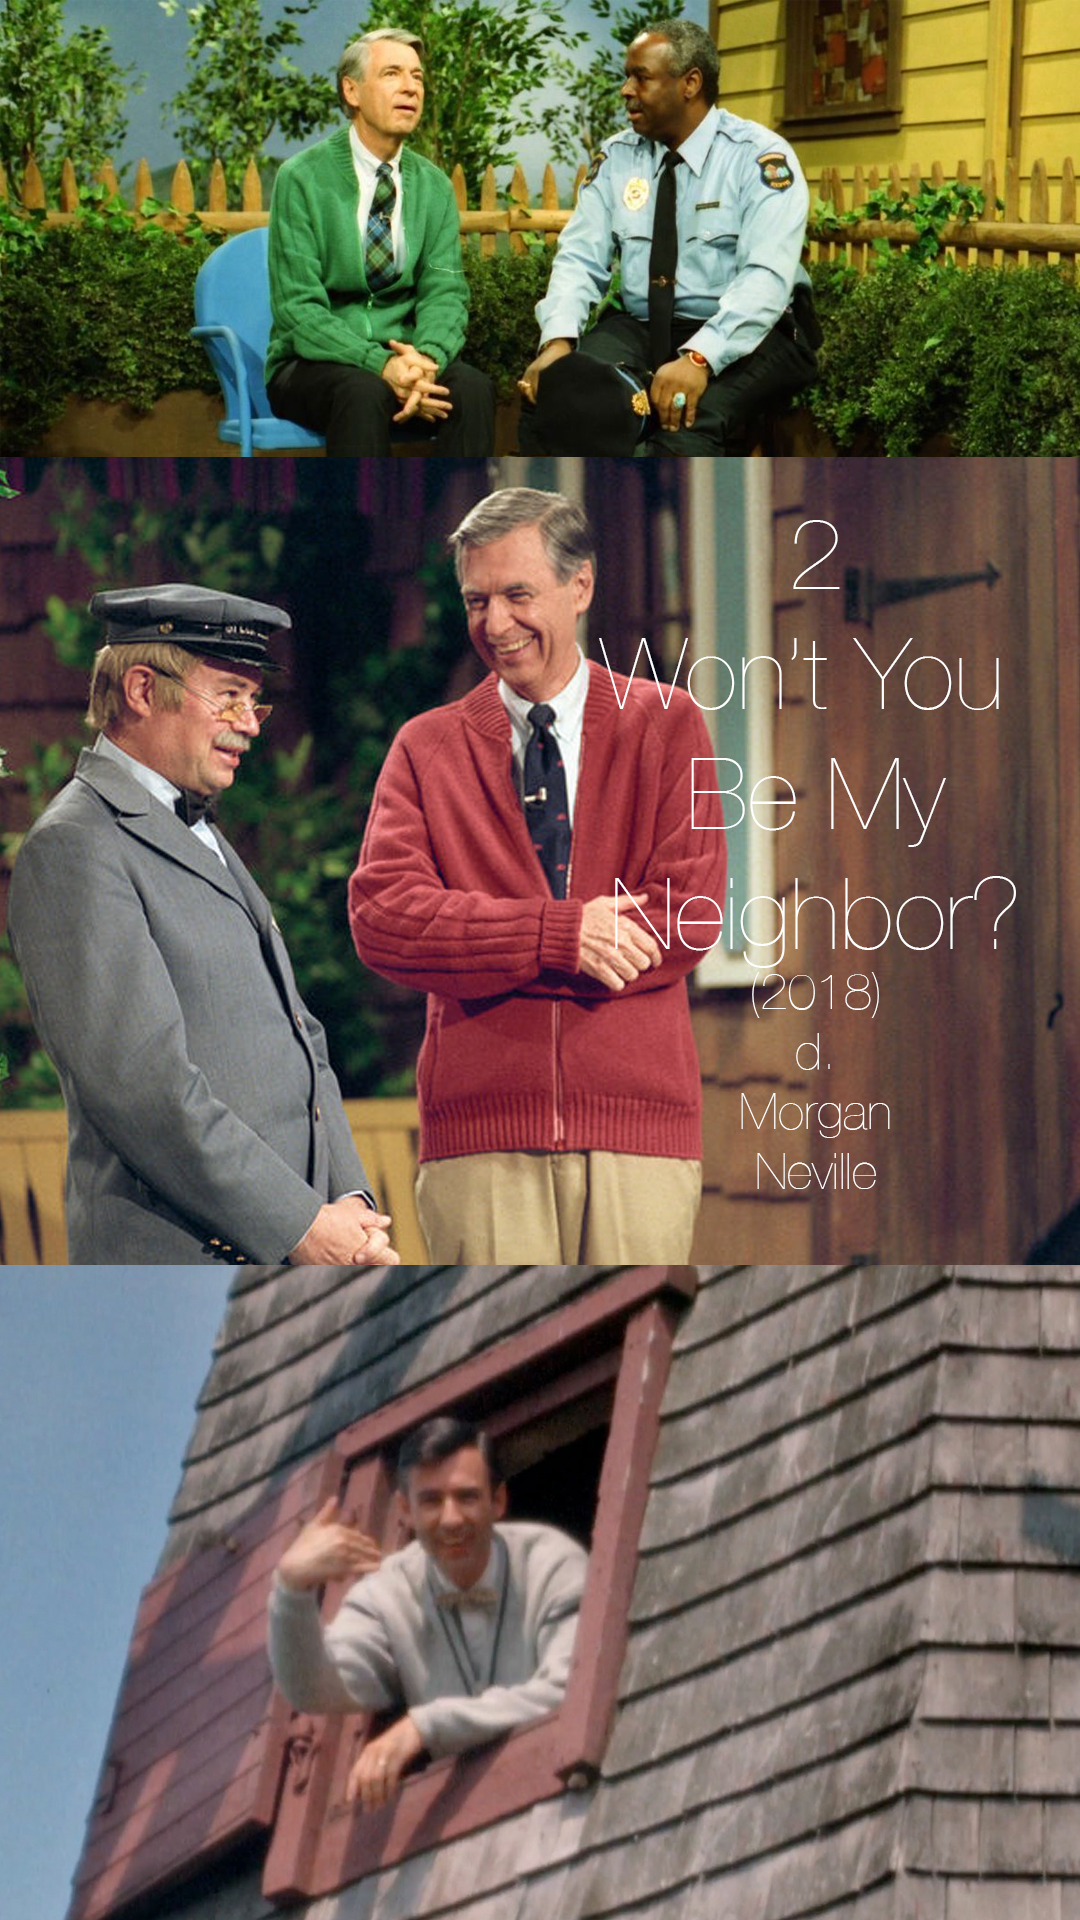 Whether Mr Rogers was a part of your childhood or not, WON'T YOU BE MY NEIGHBOR? will make you want to be a better person. This film is the perfect explanation of why Fred Rogers was important, and the execution feels so perfectly tender. This is a film Mr Rogers himself would be proud of.